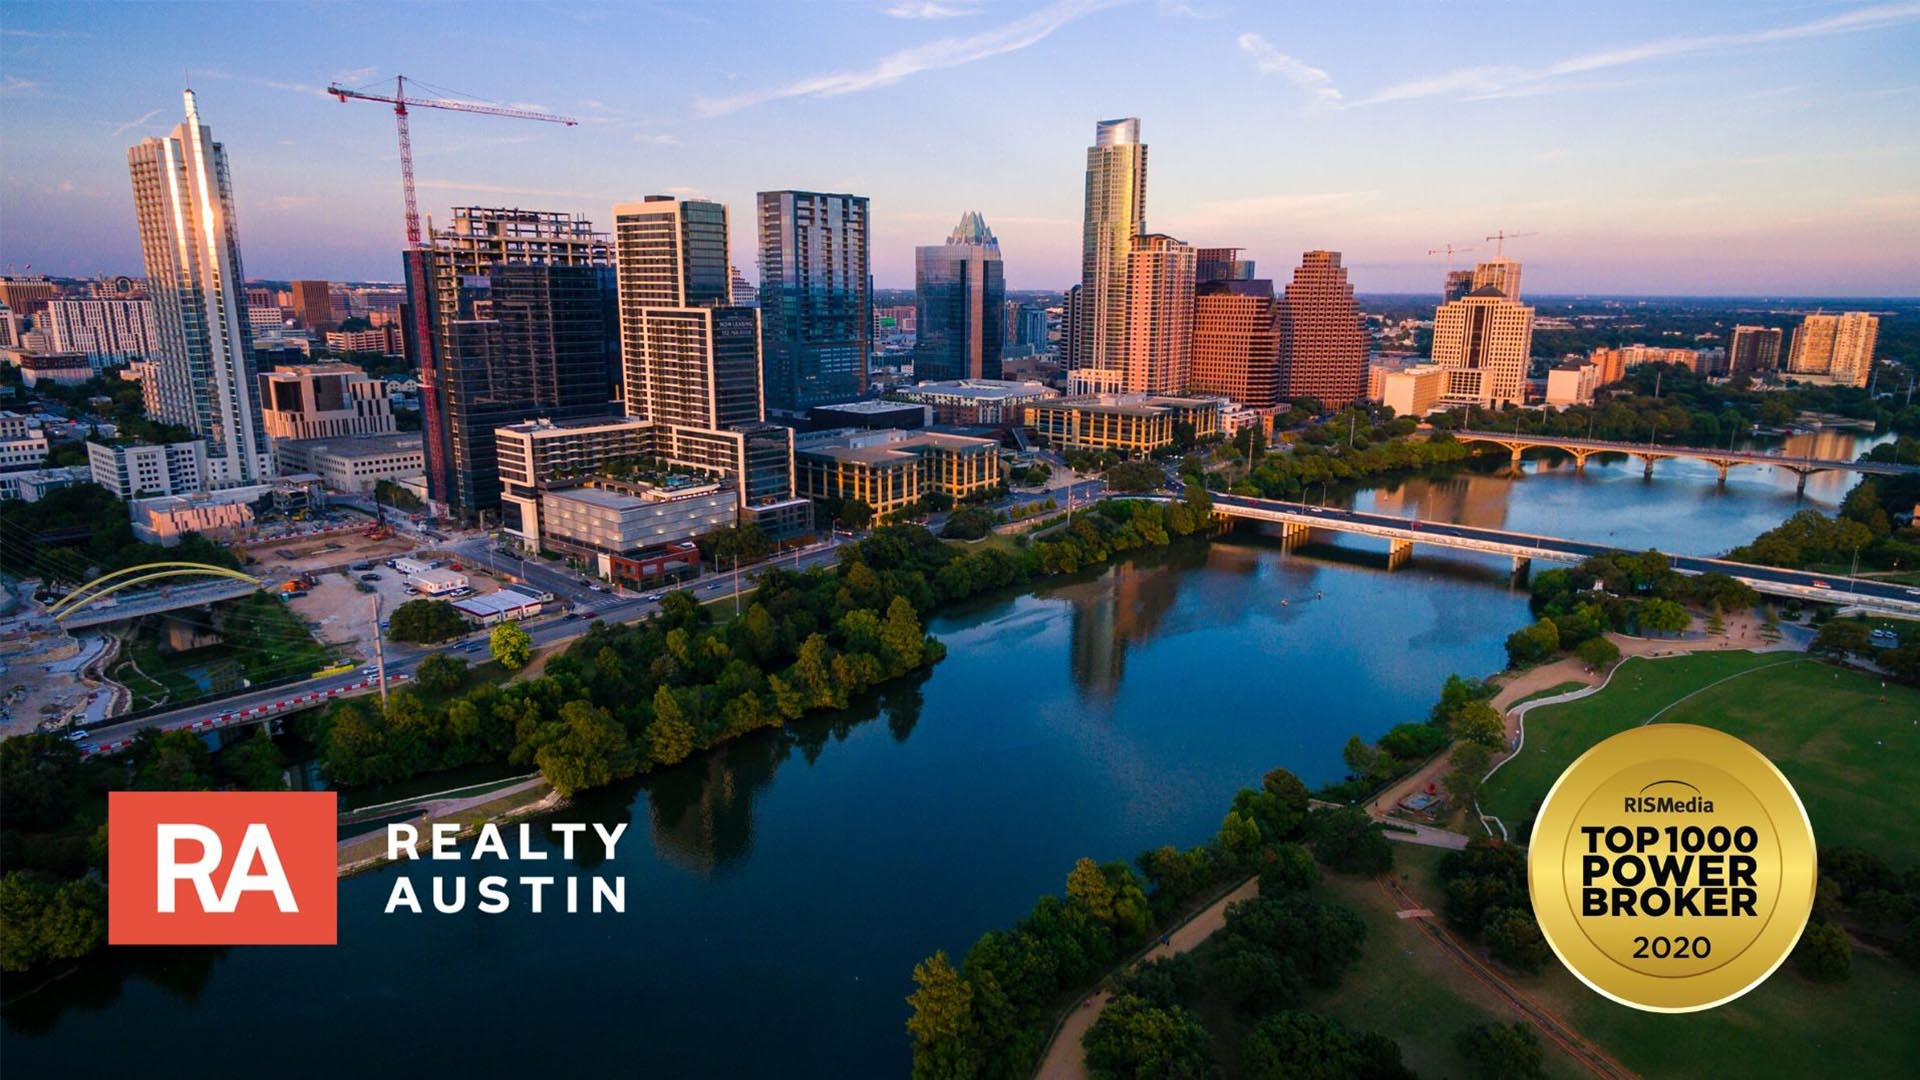 Realty Austin Rises to No. 46 in RISMedia Power Broker Report